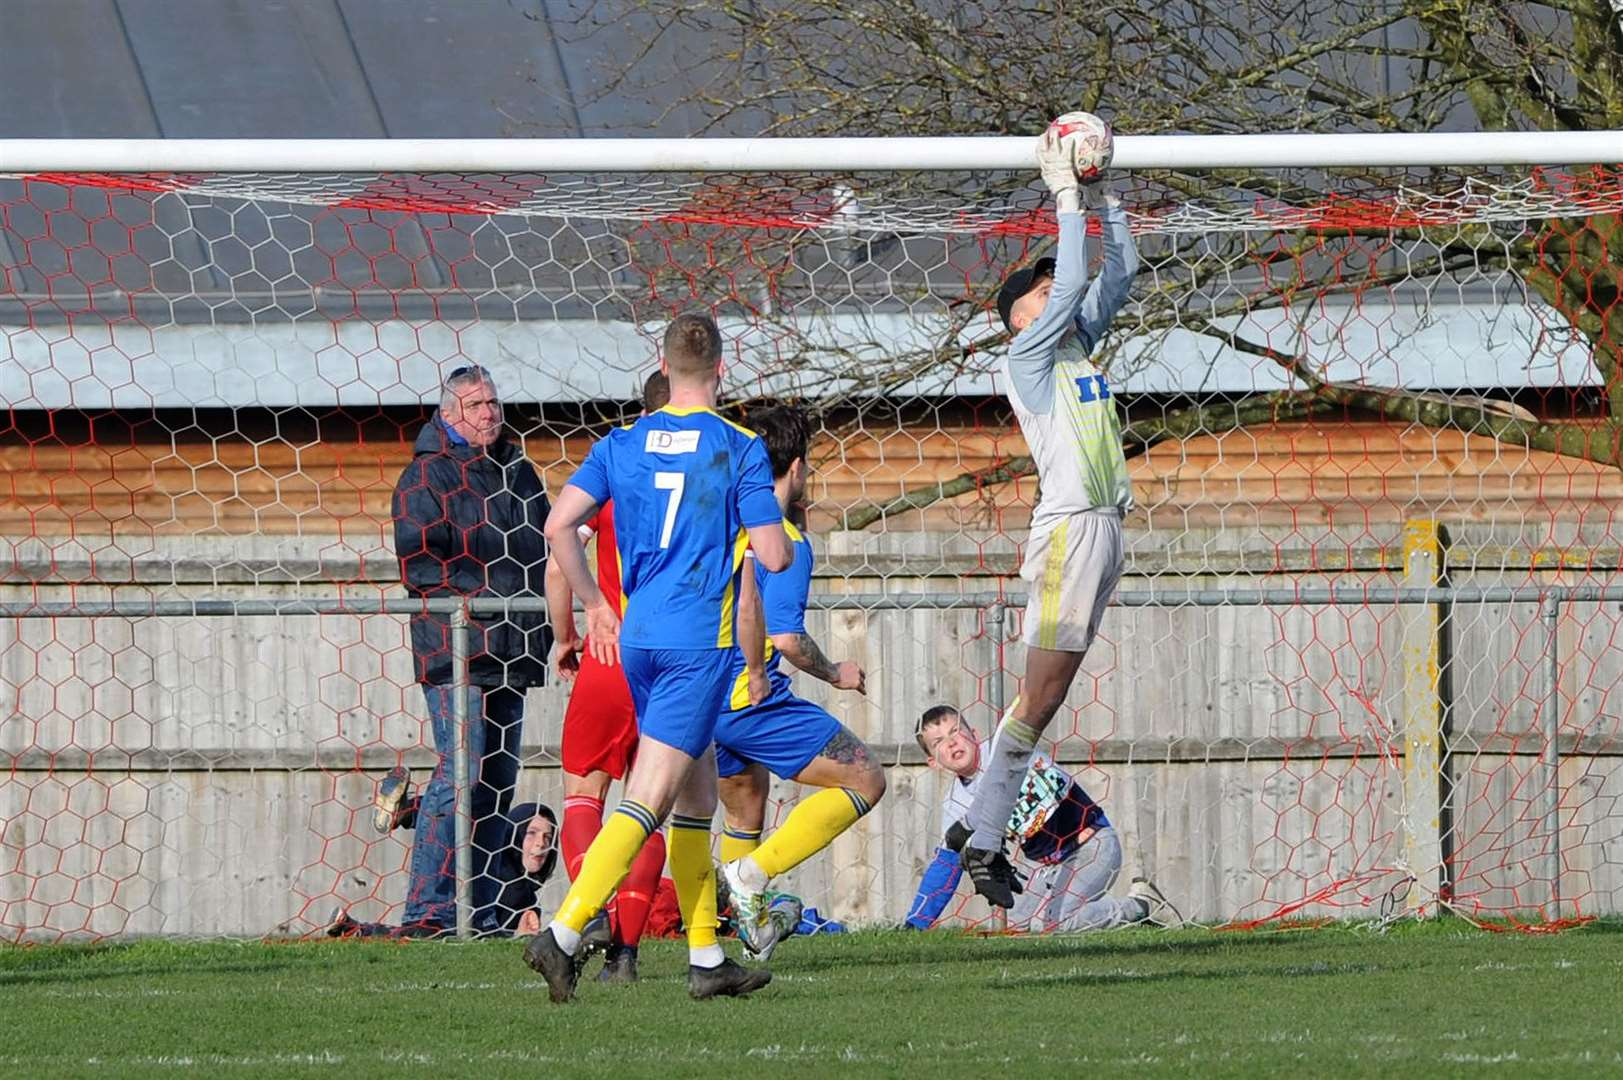 FOOTBALL - Haverhill Rovers v Histon FC..Pictured: James Young in goal....PICTURE: Mecha Morton... (34203848)